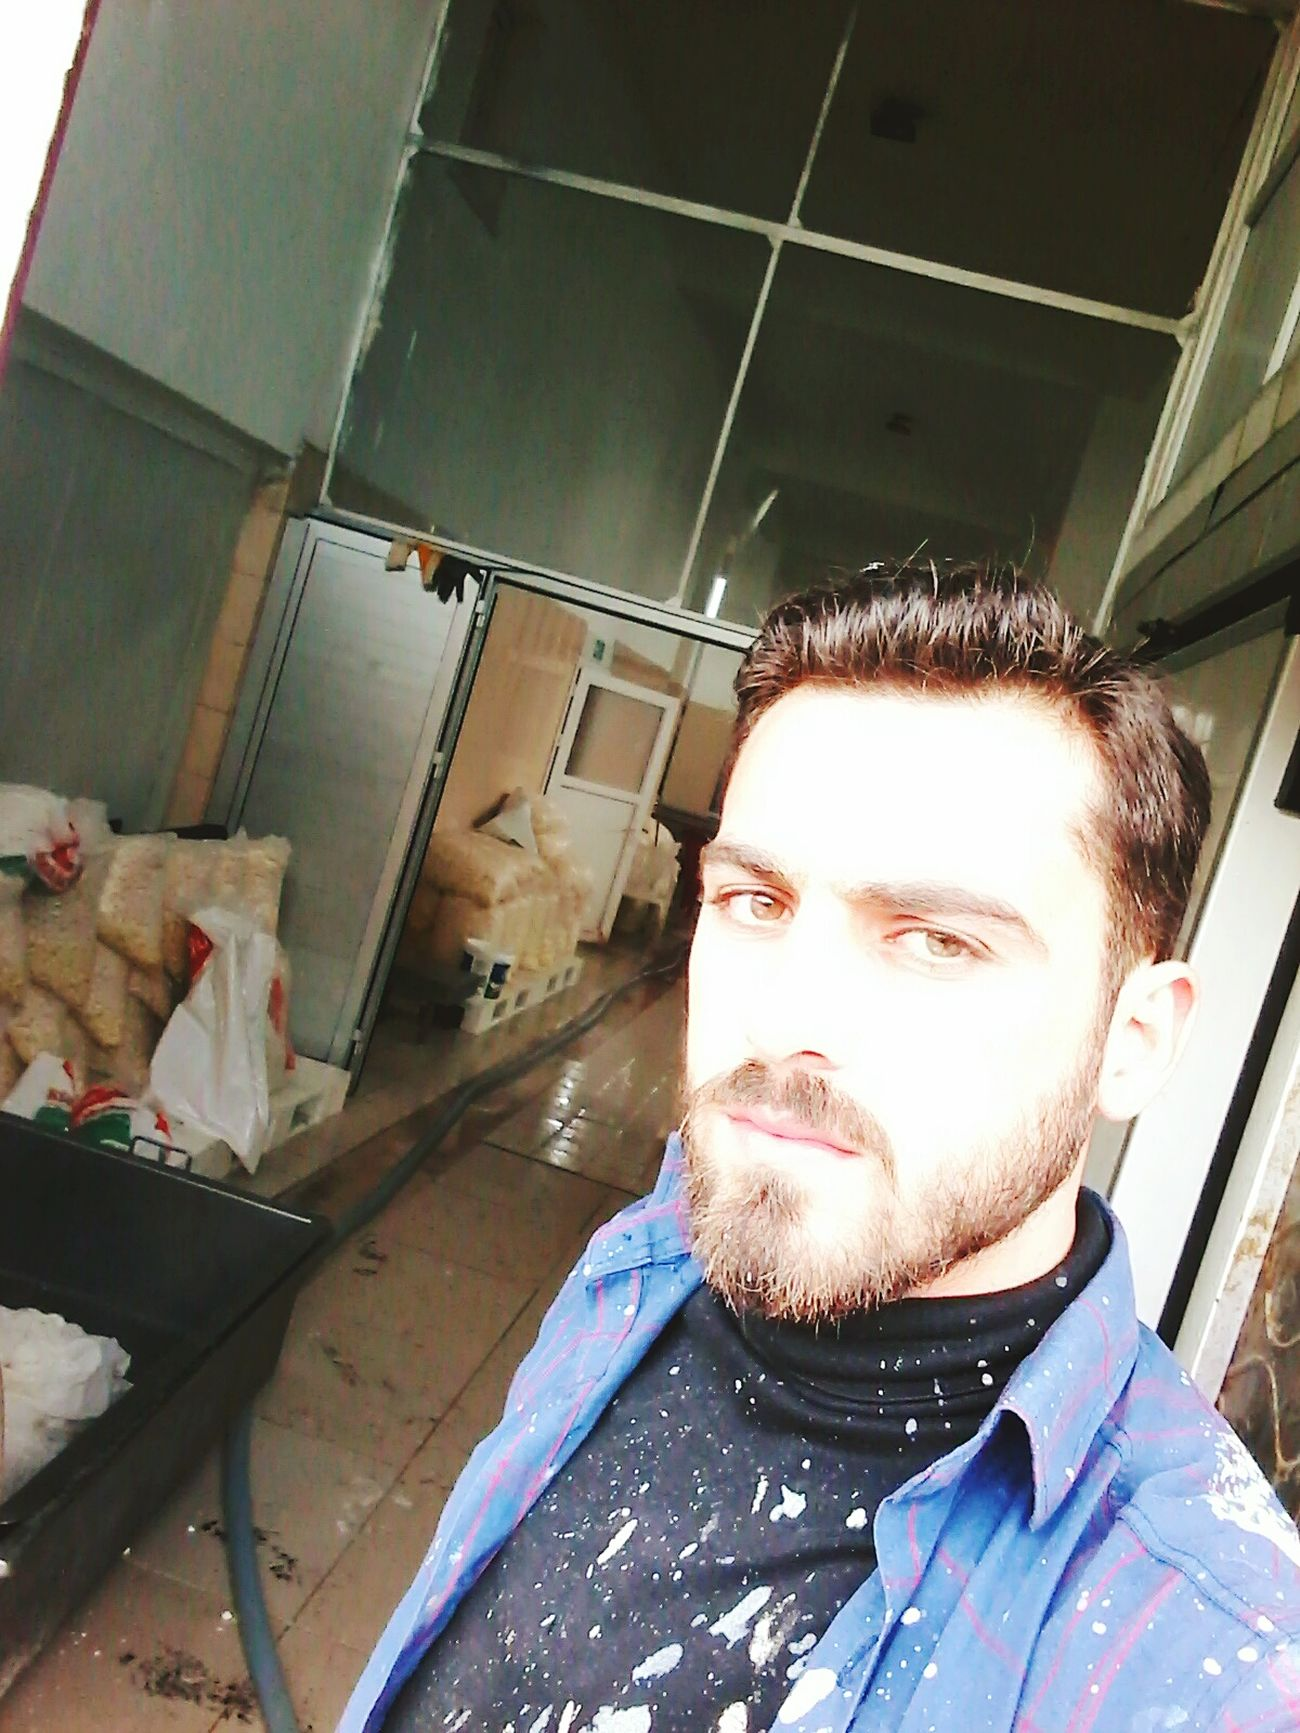 صورة شخصية تركيا_بعيون_عربيه تركيا_عشق_لا_ينتهي One Person One Man Only Beard Only Men Front View Headshot Adults Only Portrait People Adult Indoors  Protective Workwear Close-up Day Young Adult First Eyeem Photo